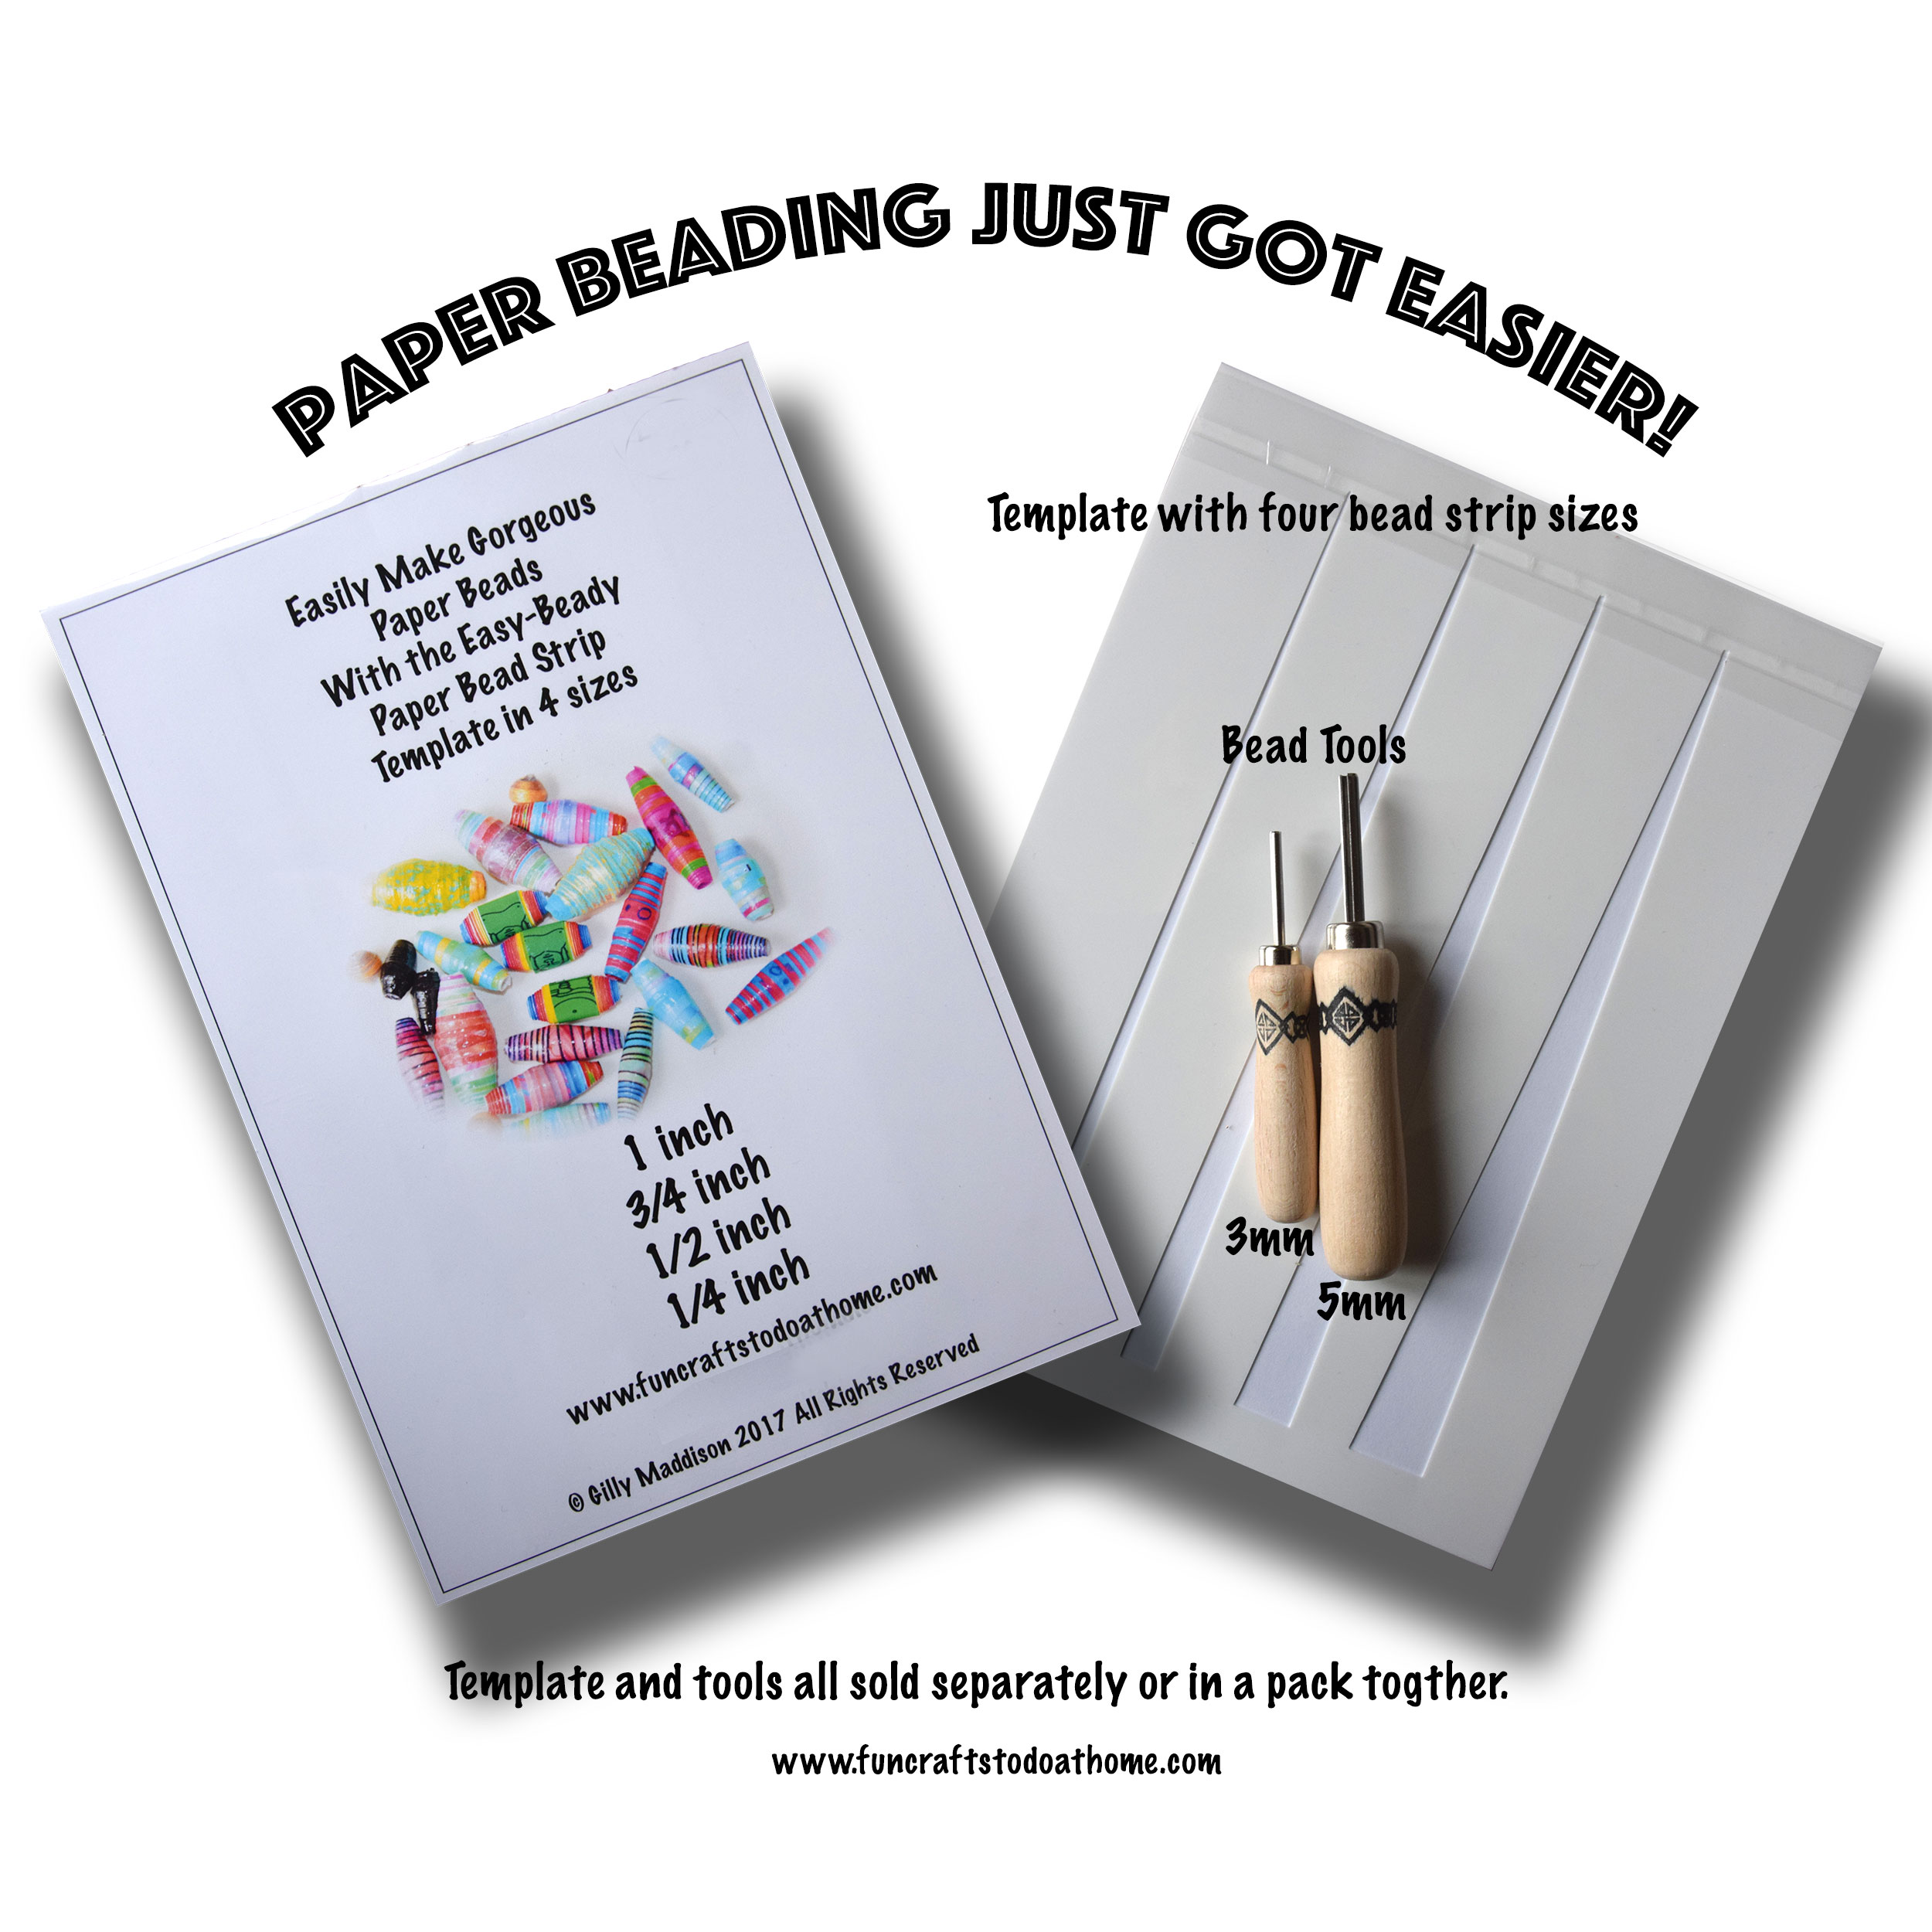 Paper Bead Templates and Tools – Save Time And Money With This Paper Bead Making Kit